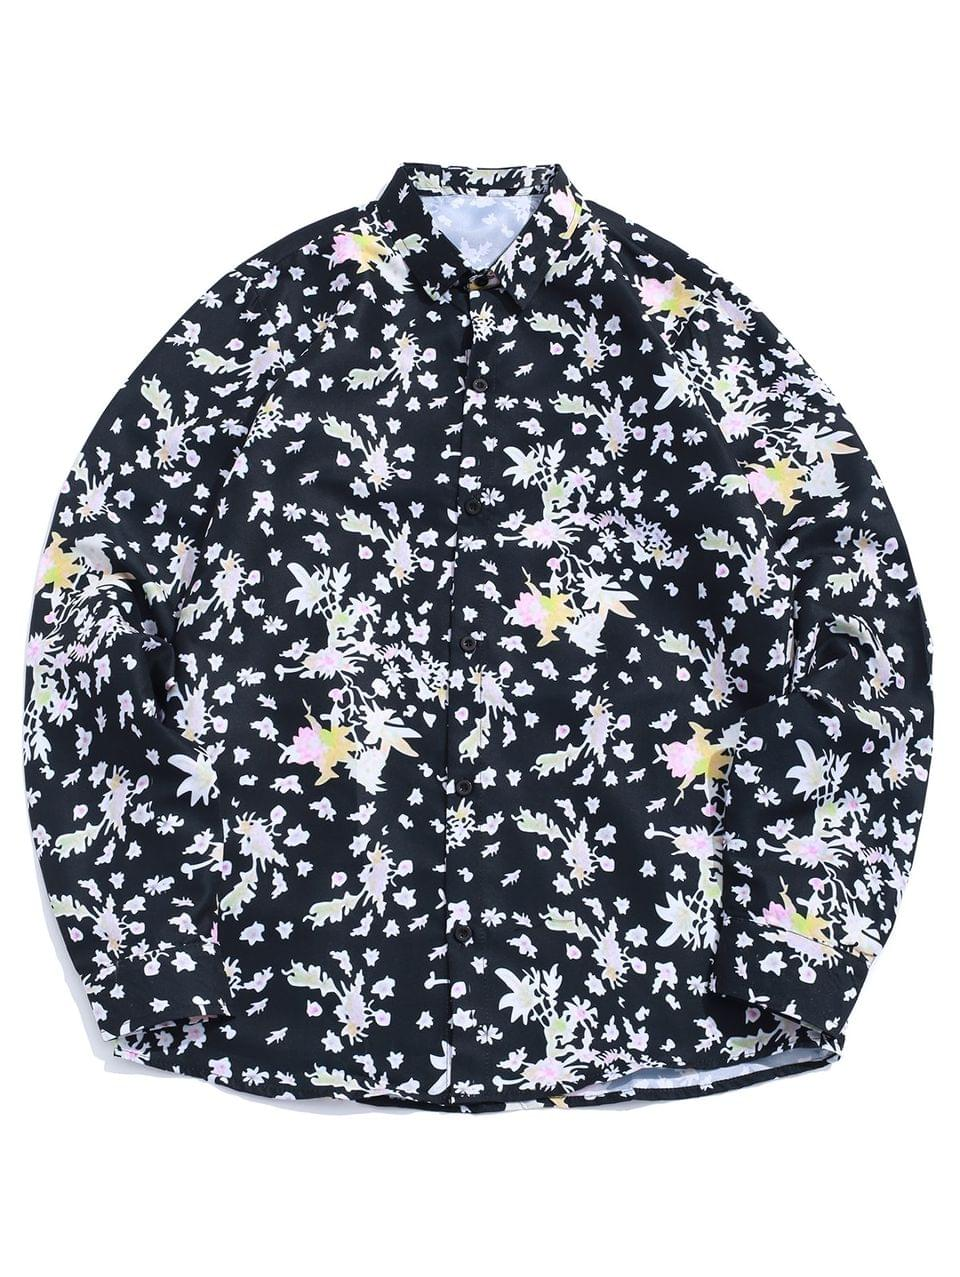 Men's Floral Painting Allover Print Long Sleeve Casual Shirt - Black Xl